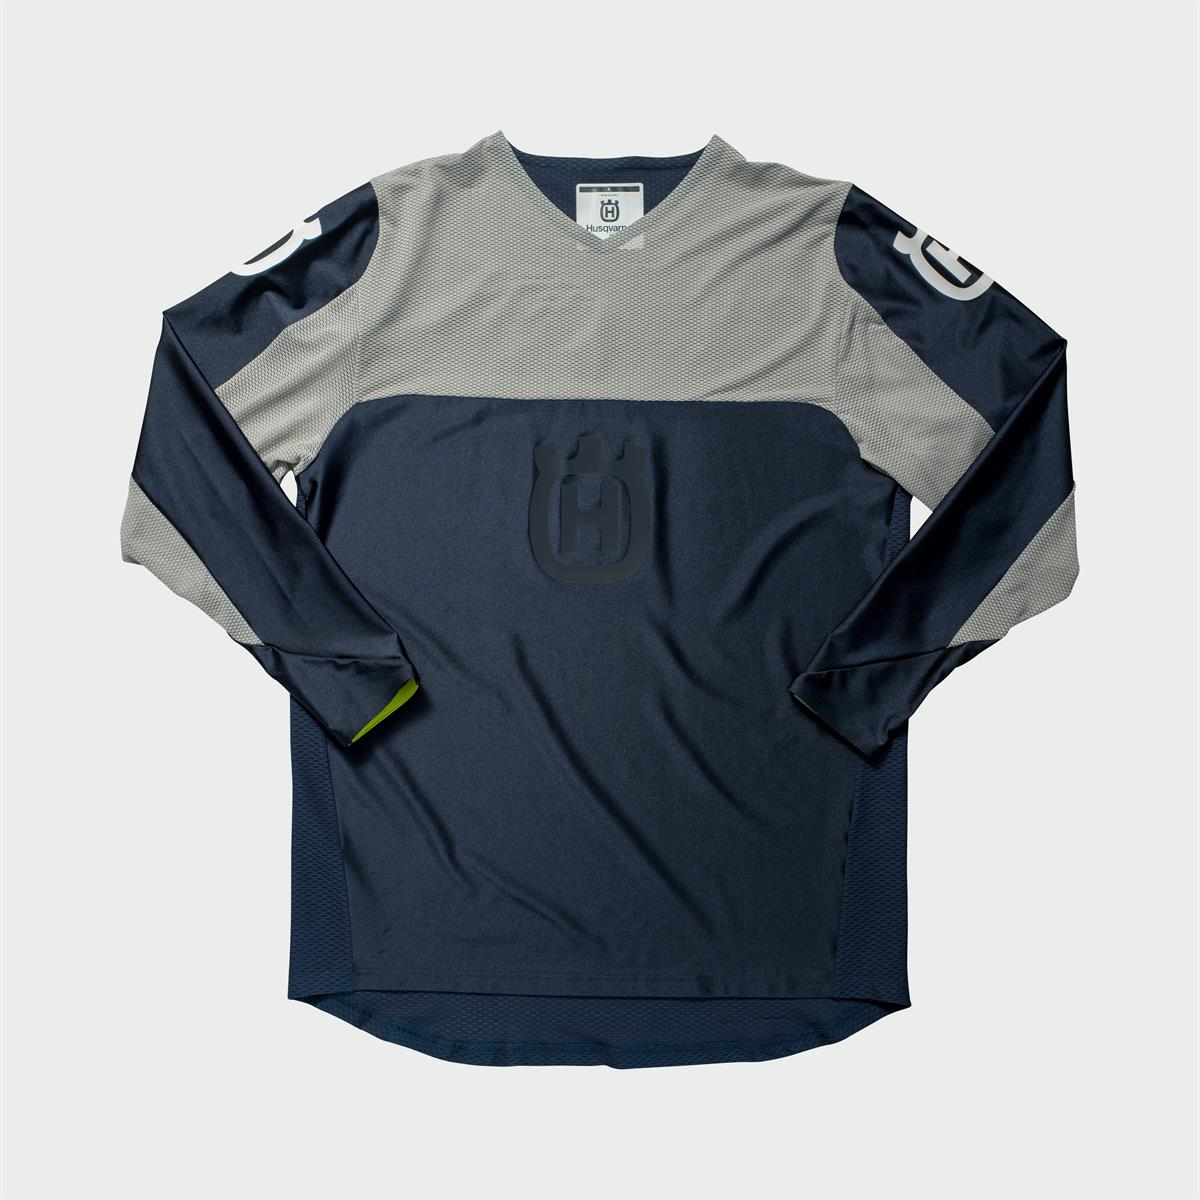 Husqvarna Functional Clothing - RAILED SHIRT BLUE